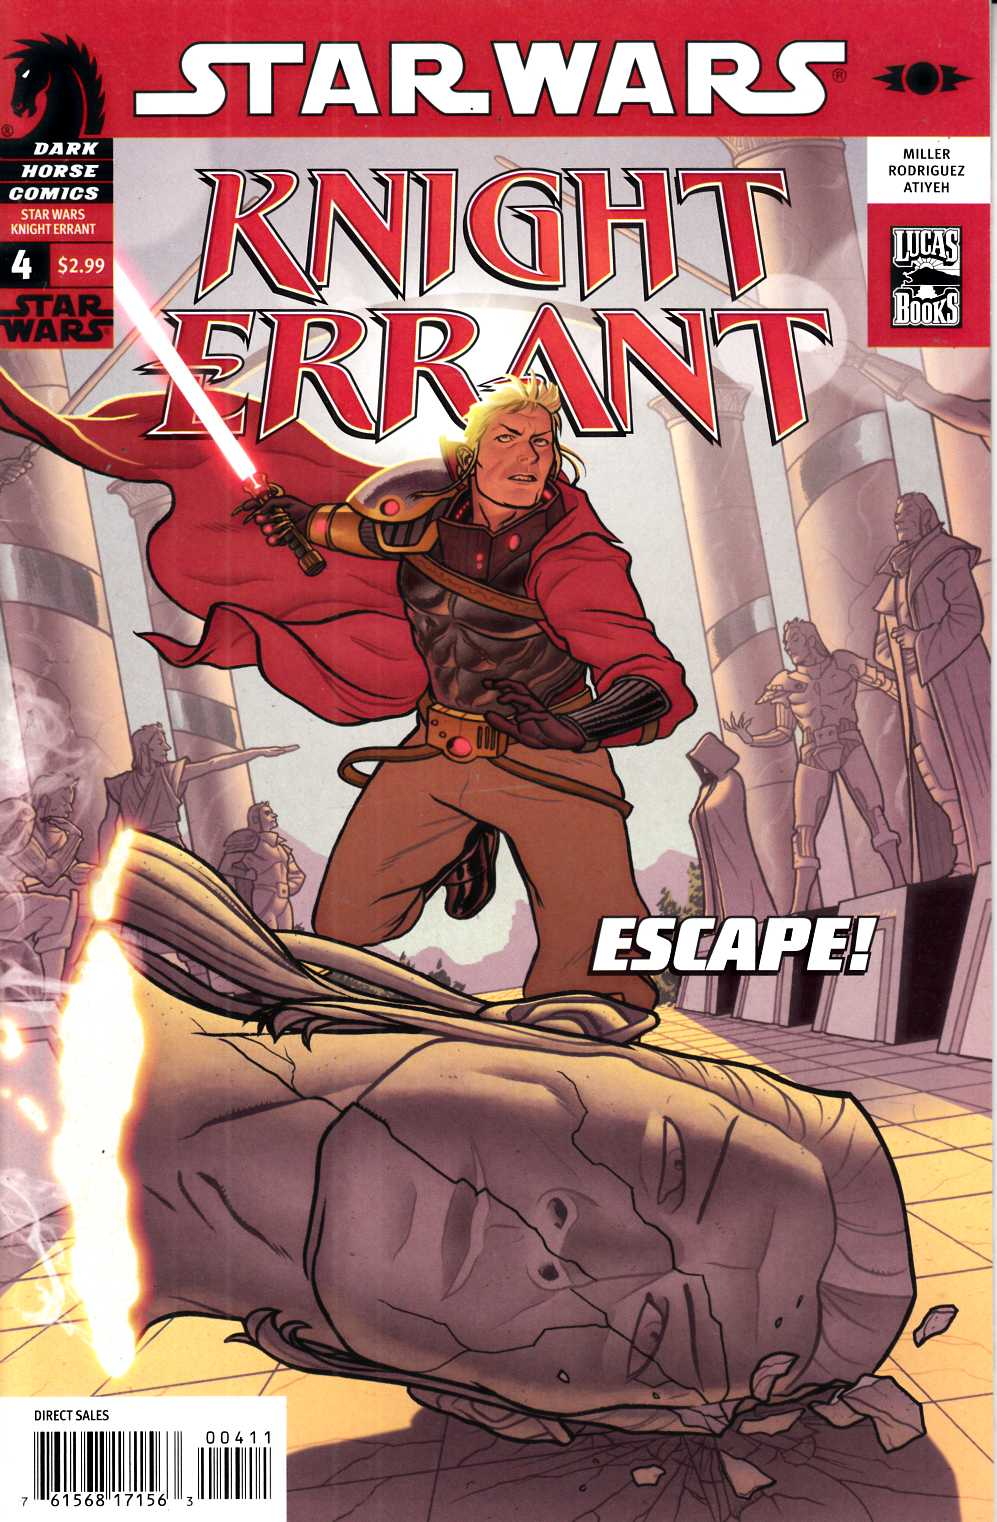 Star Wars Knight Errant #4 Aflame Very Fine (8.0) [Dark Horse Comic] THUMBNAIL